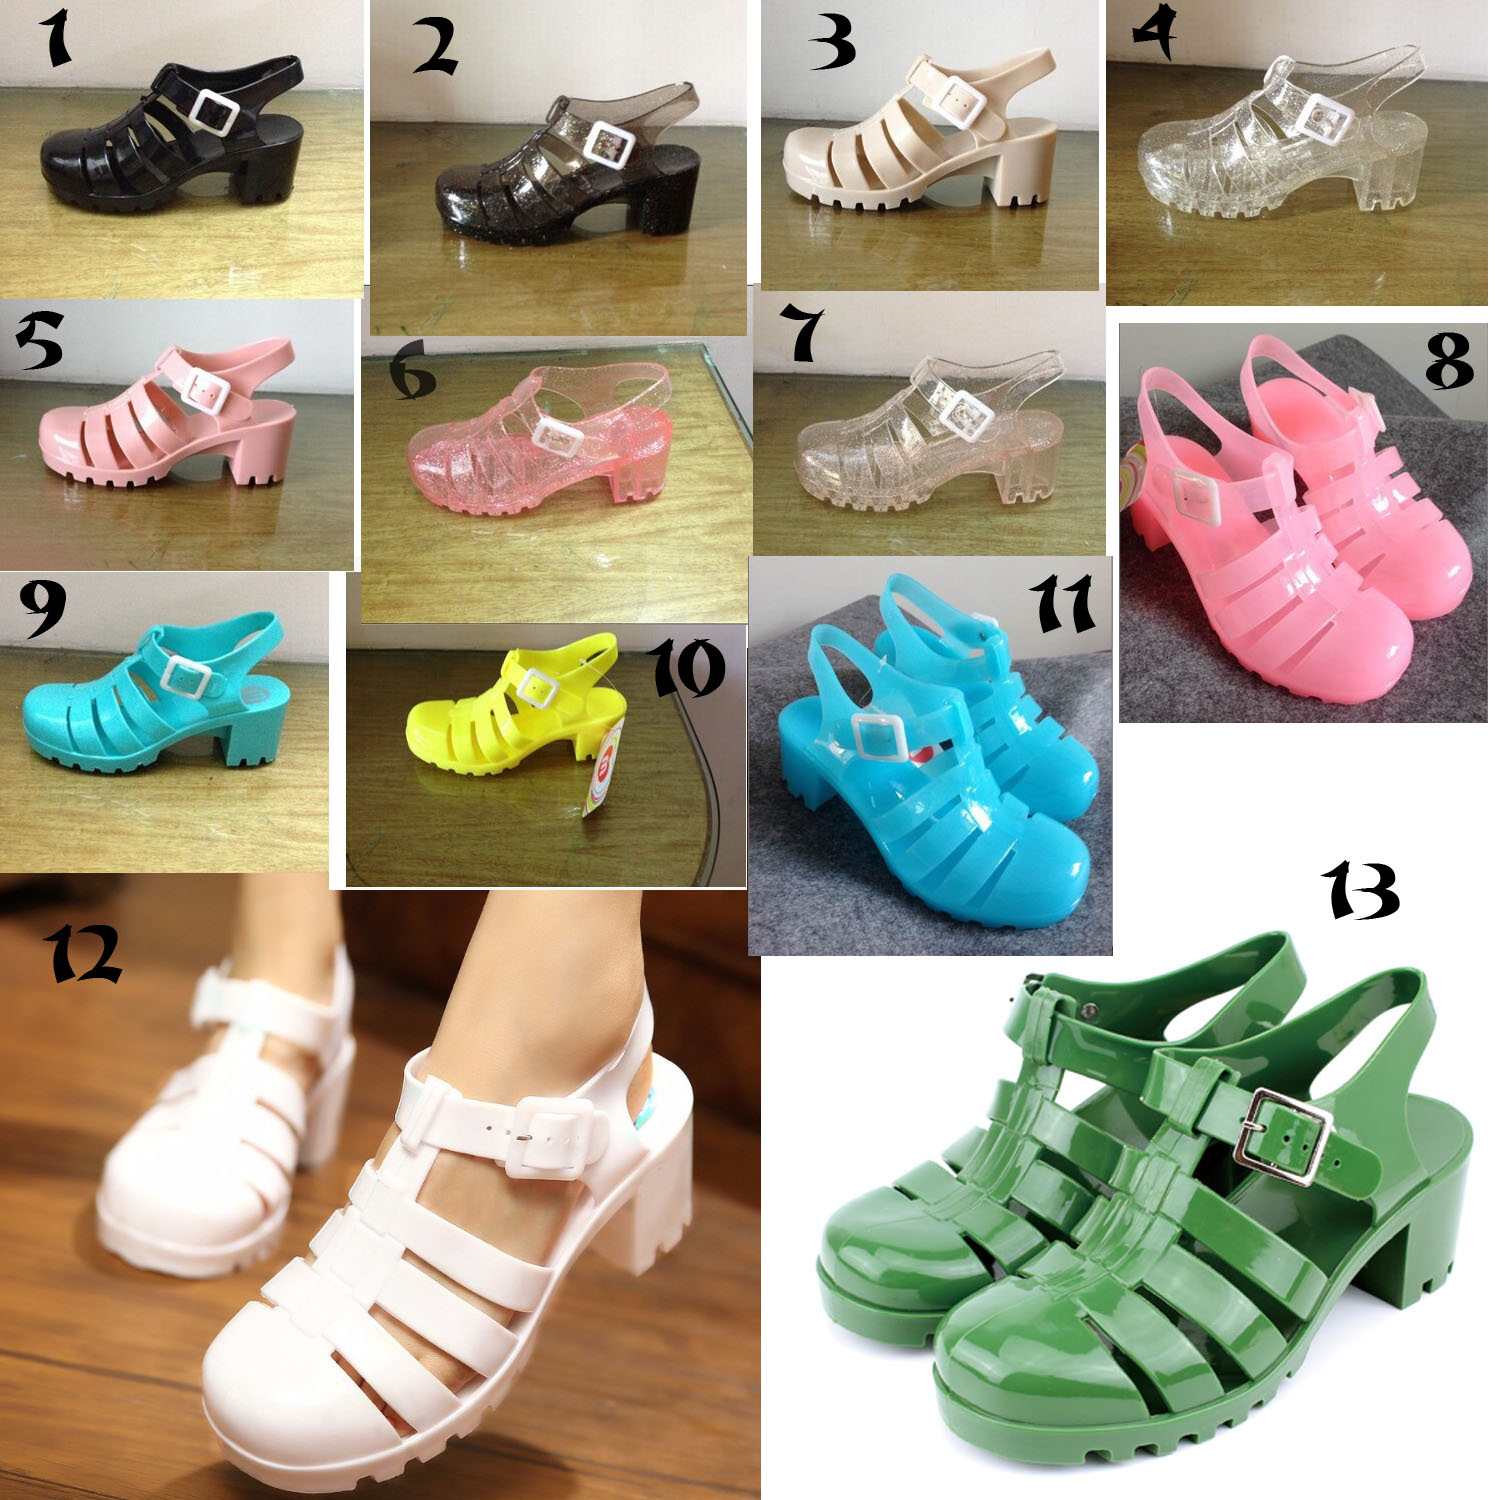 jelly_shoes_zapatos_gelatina_wh031_sandals_6.jpg